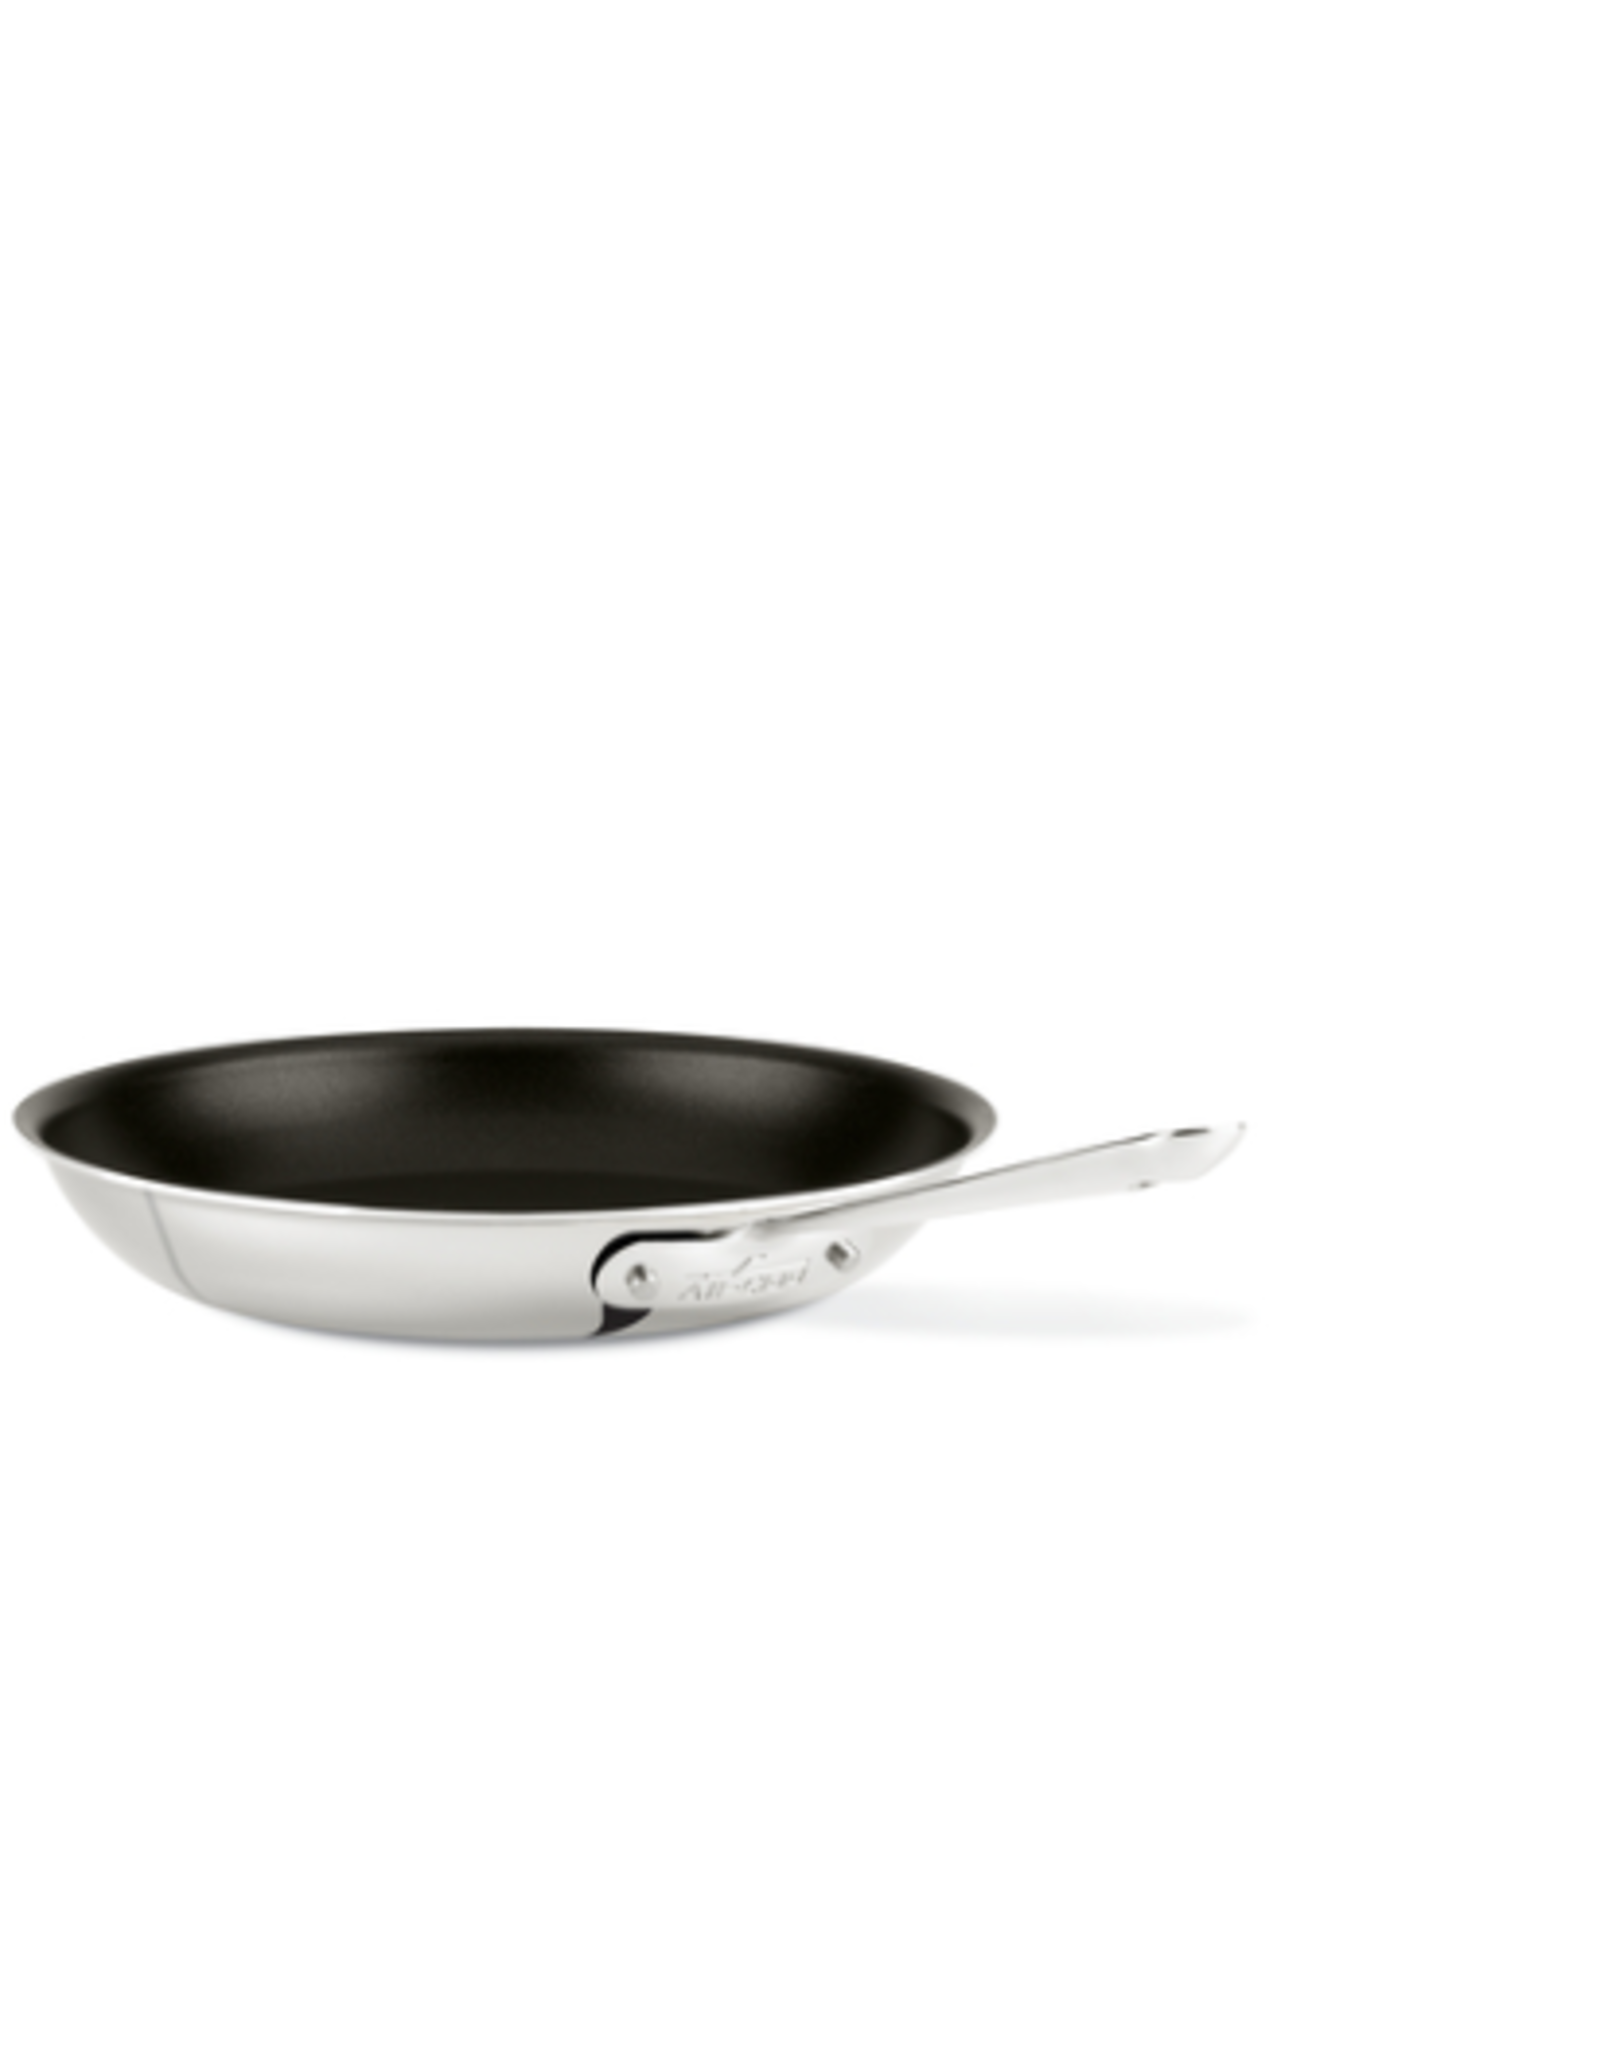 "All-Clad AC D3 Stainless 12"" Fry Pan, Non-Stick"